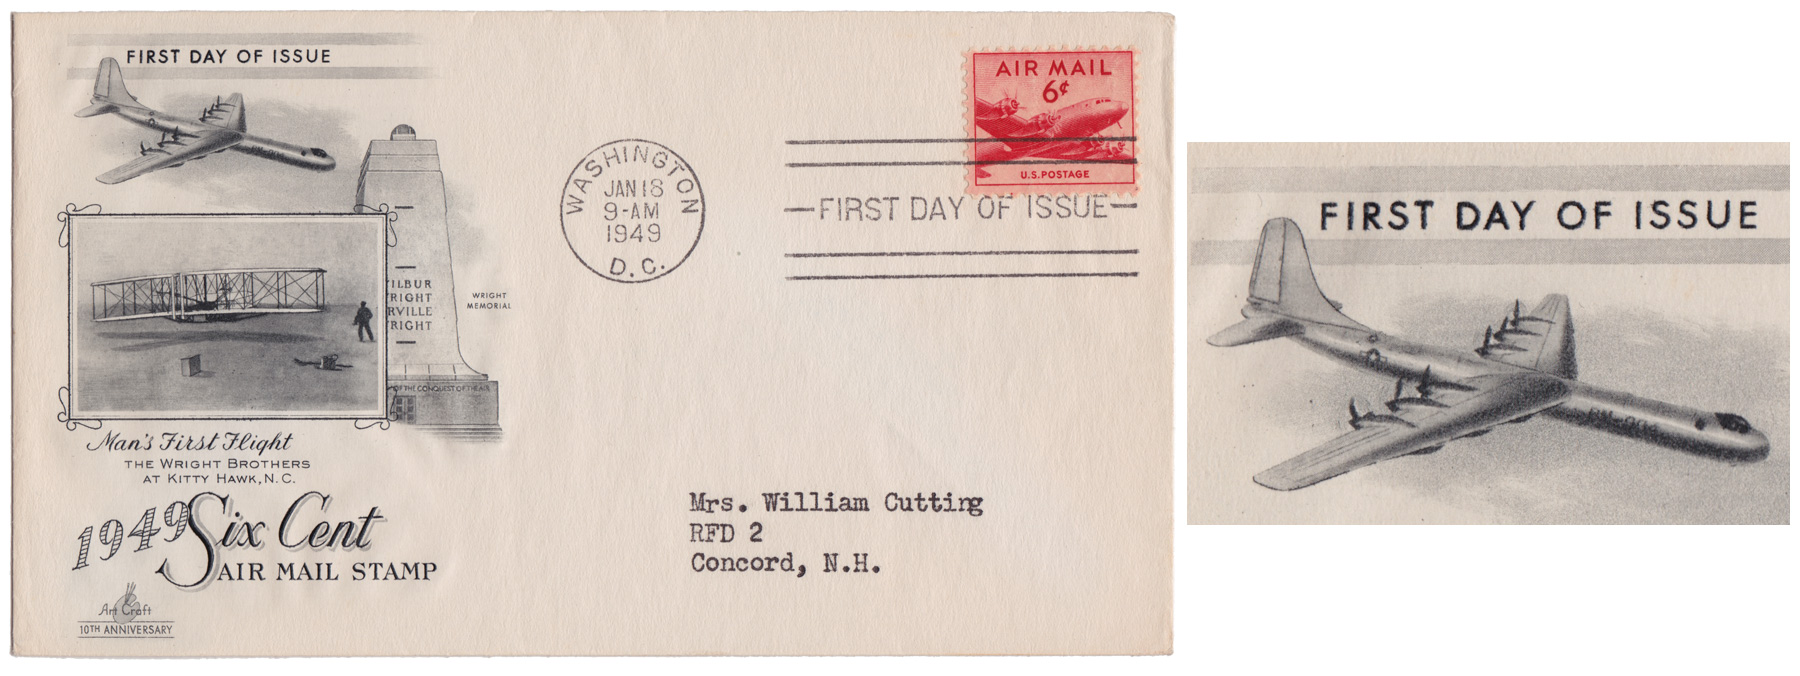 U.S. Postal Service - First Day Cover: Six Cent Air Mail Cachet Art by: ArtCraft Cachet Art: Man's First Flight / Wright Brothers with B-36 inflight First Day Issue: Washington D.C. / January 18, 1949